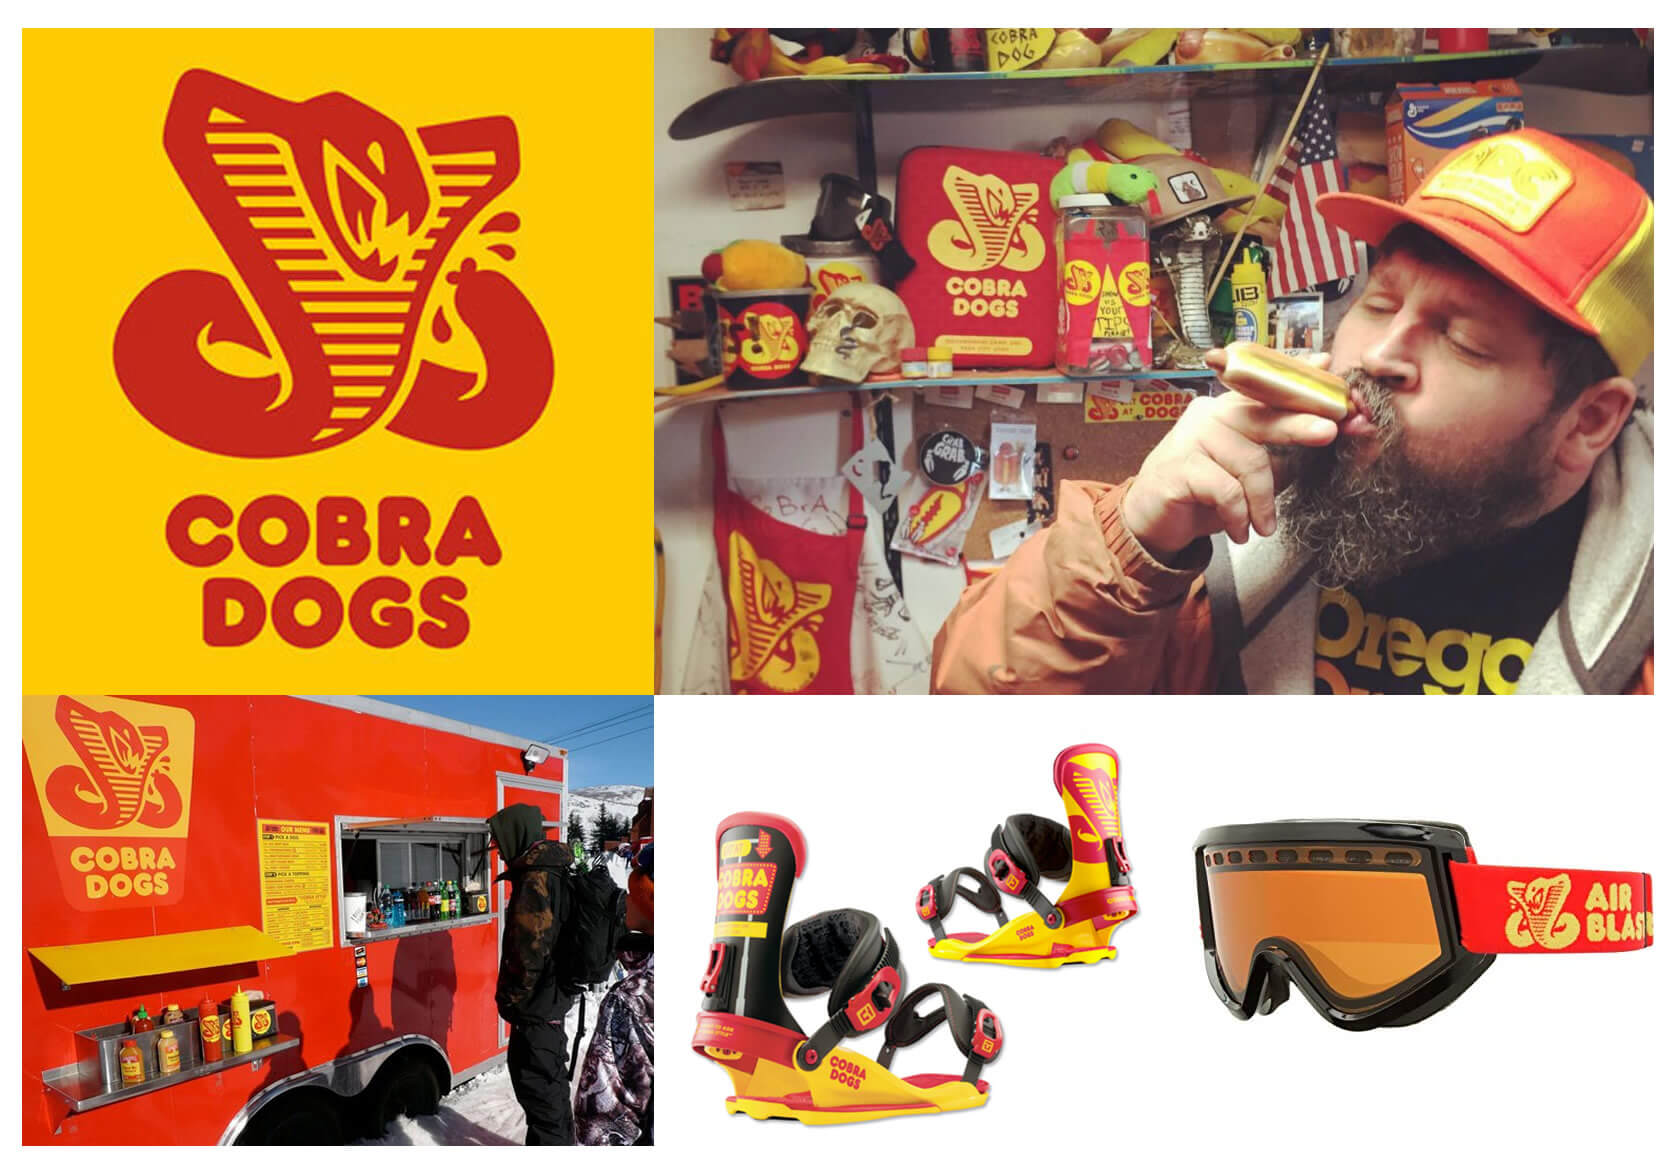 Designer Interview With Aaron Draplin - Cobra Dogs